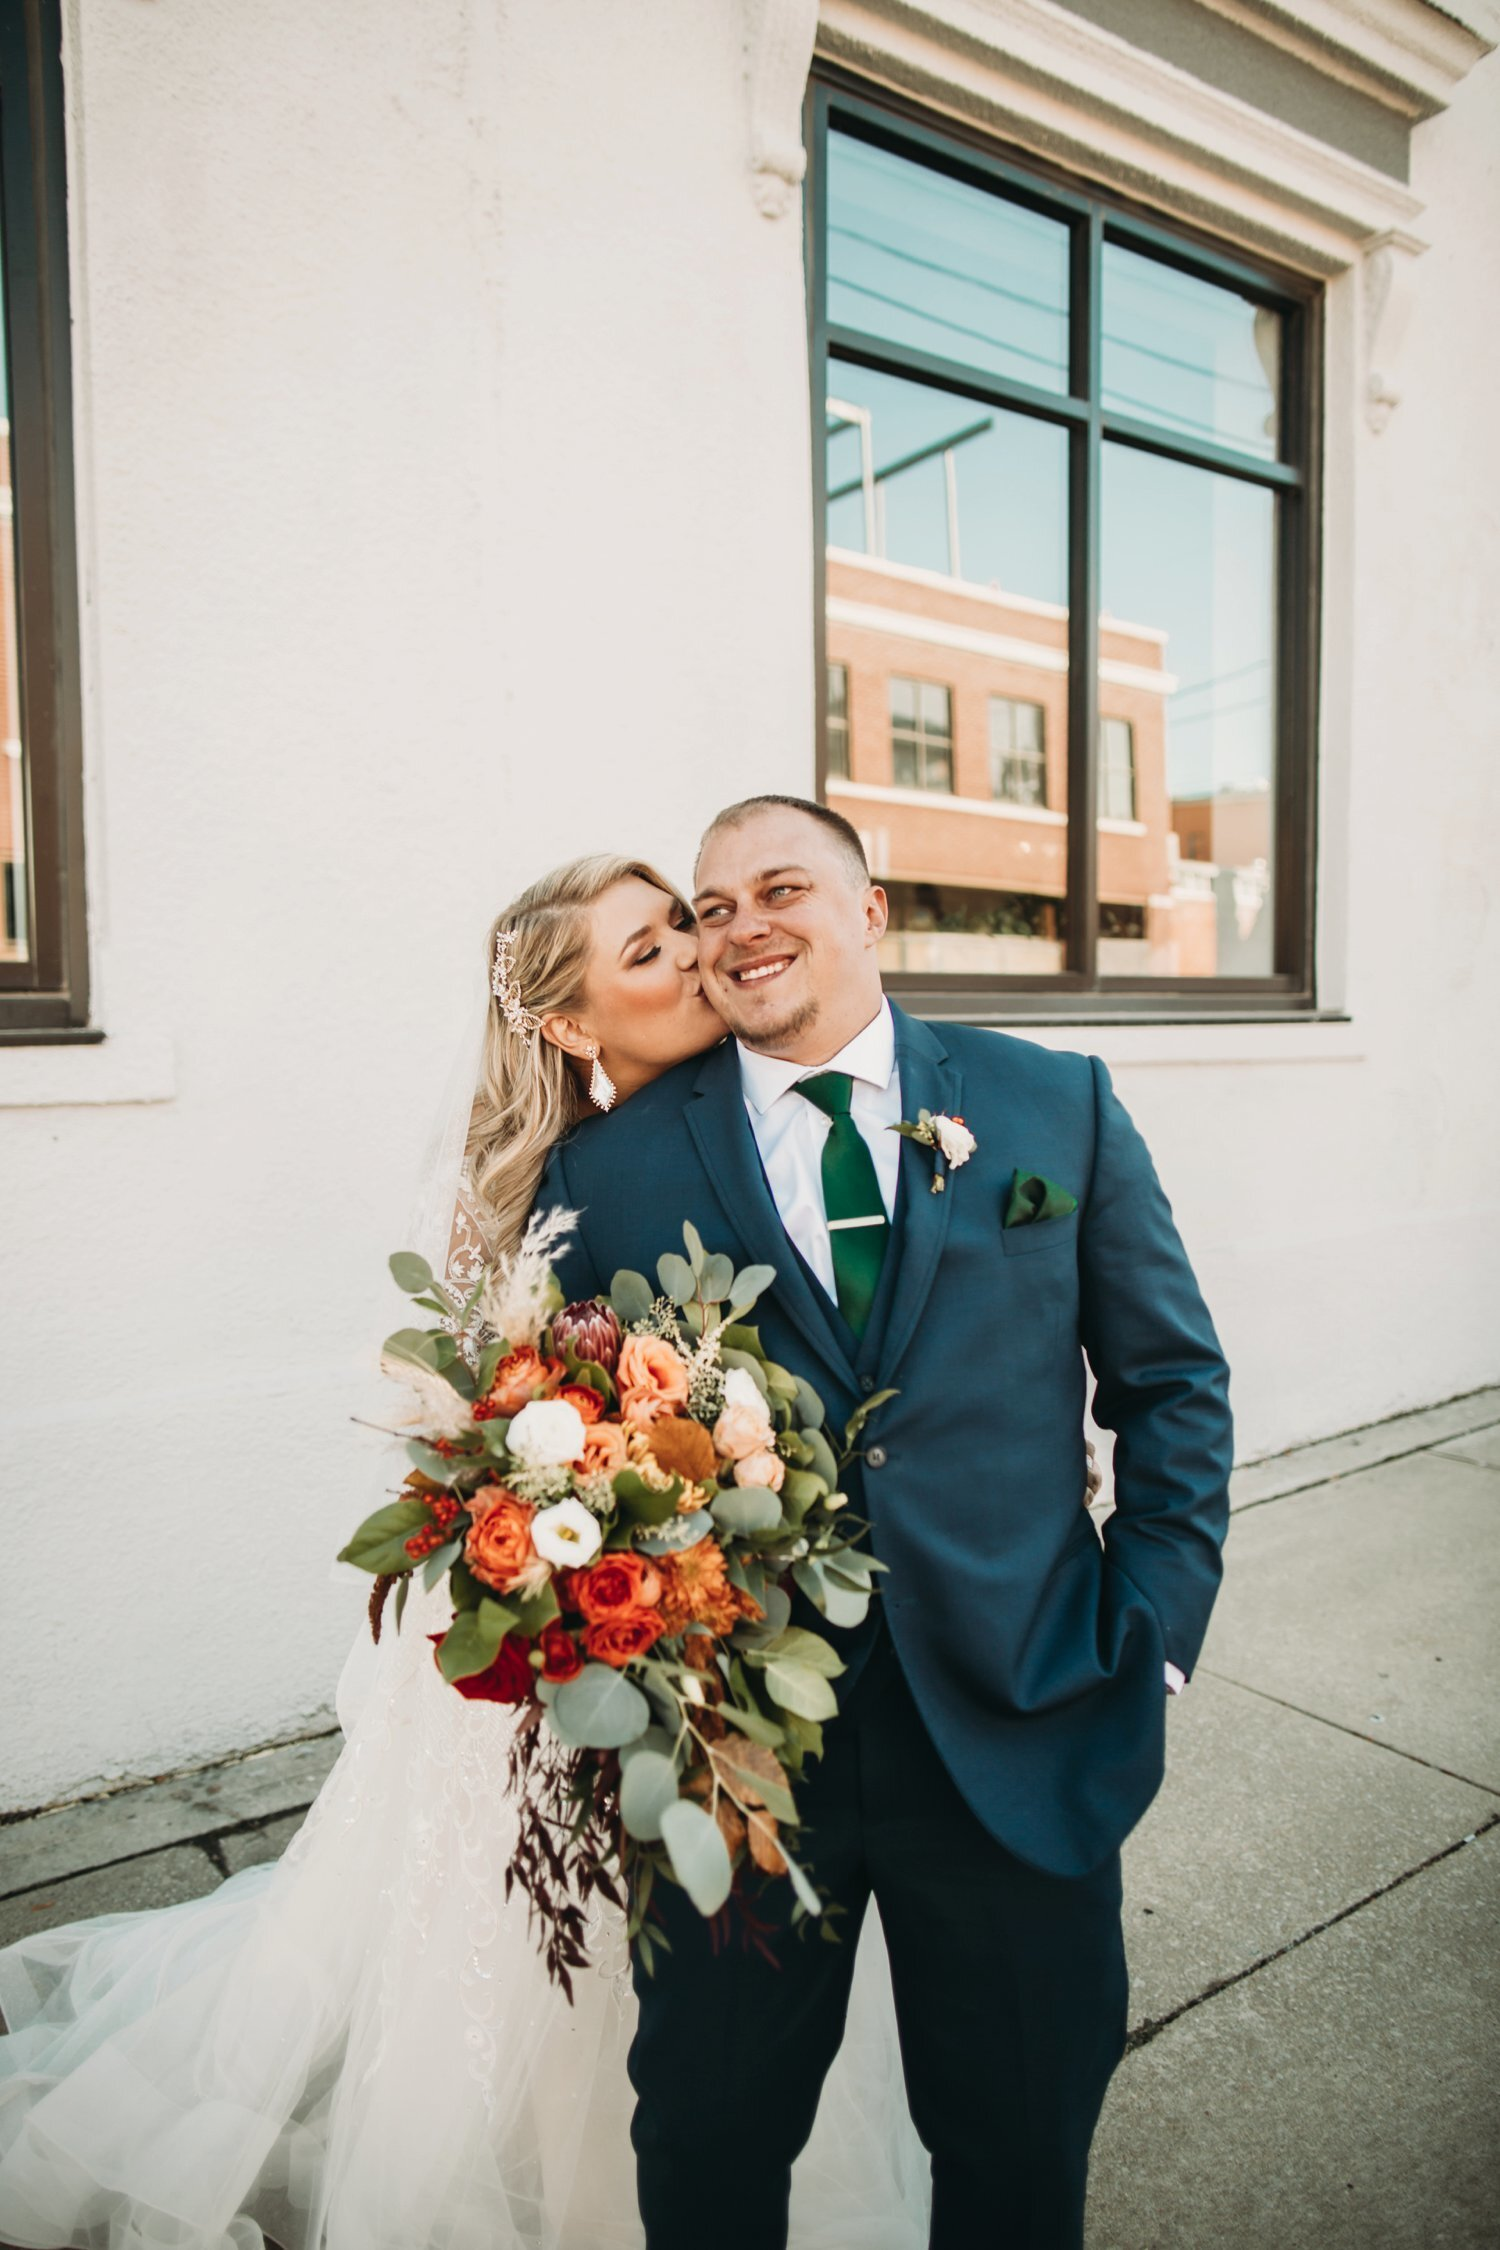 Kansas City Salt Lake City Destination Wedding Photographer_0056